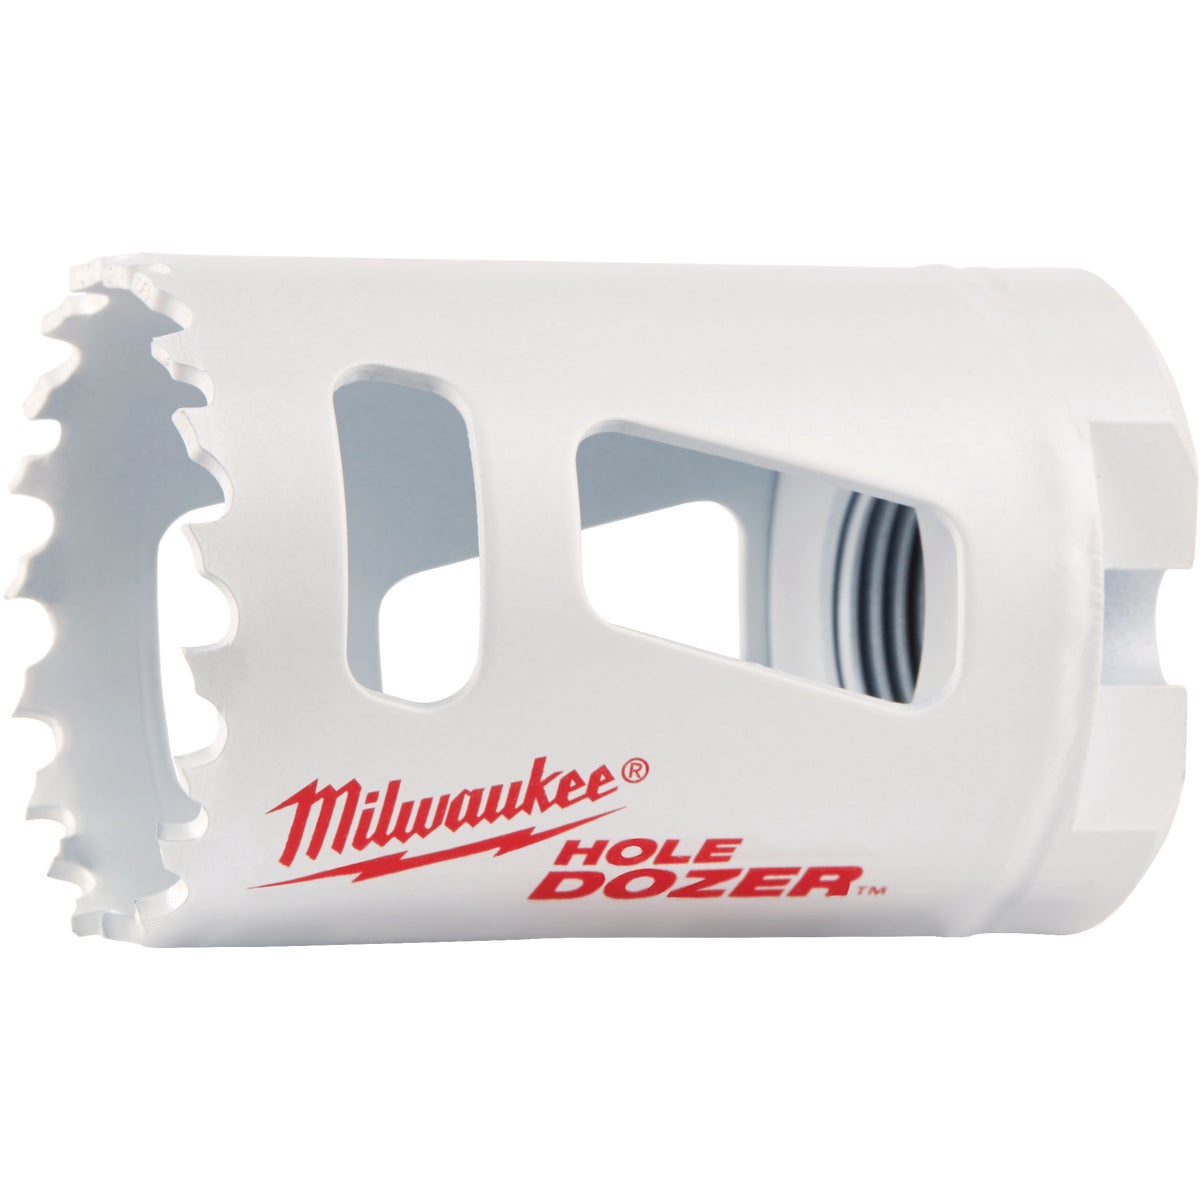 "3/4"" ICE HOLE SAW - 49560023 by Milwaukee Accessory"